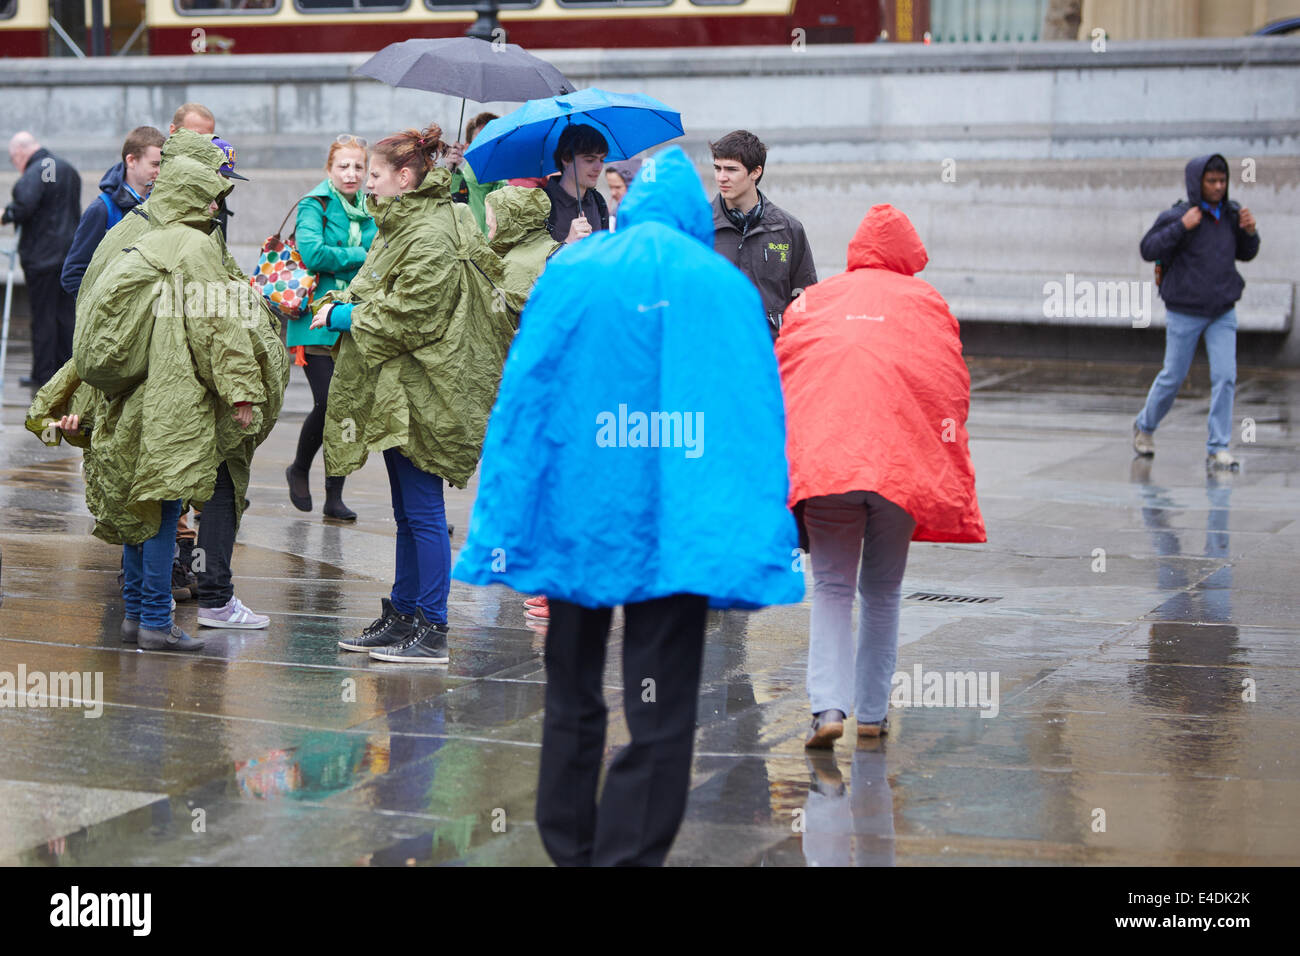 Tourists wearing ponchos to protect themselves from the rain in Trafalgar Square - Stock Image